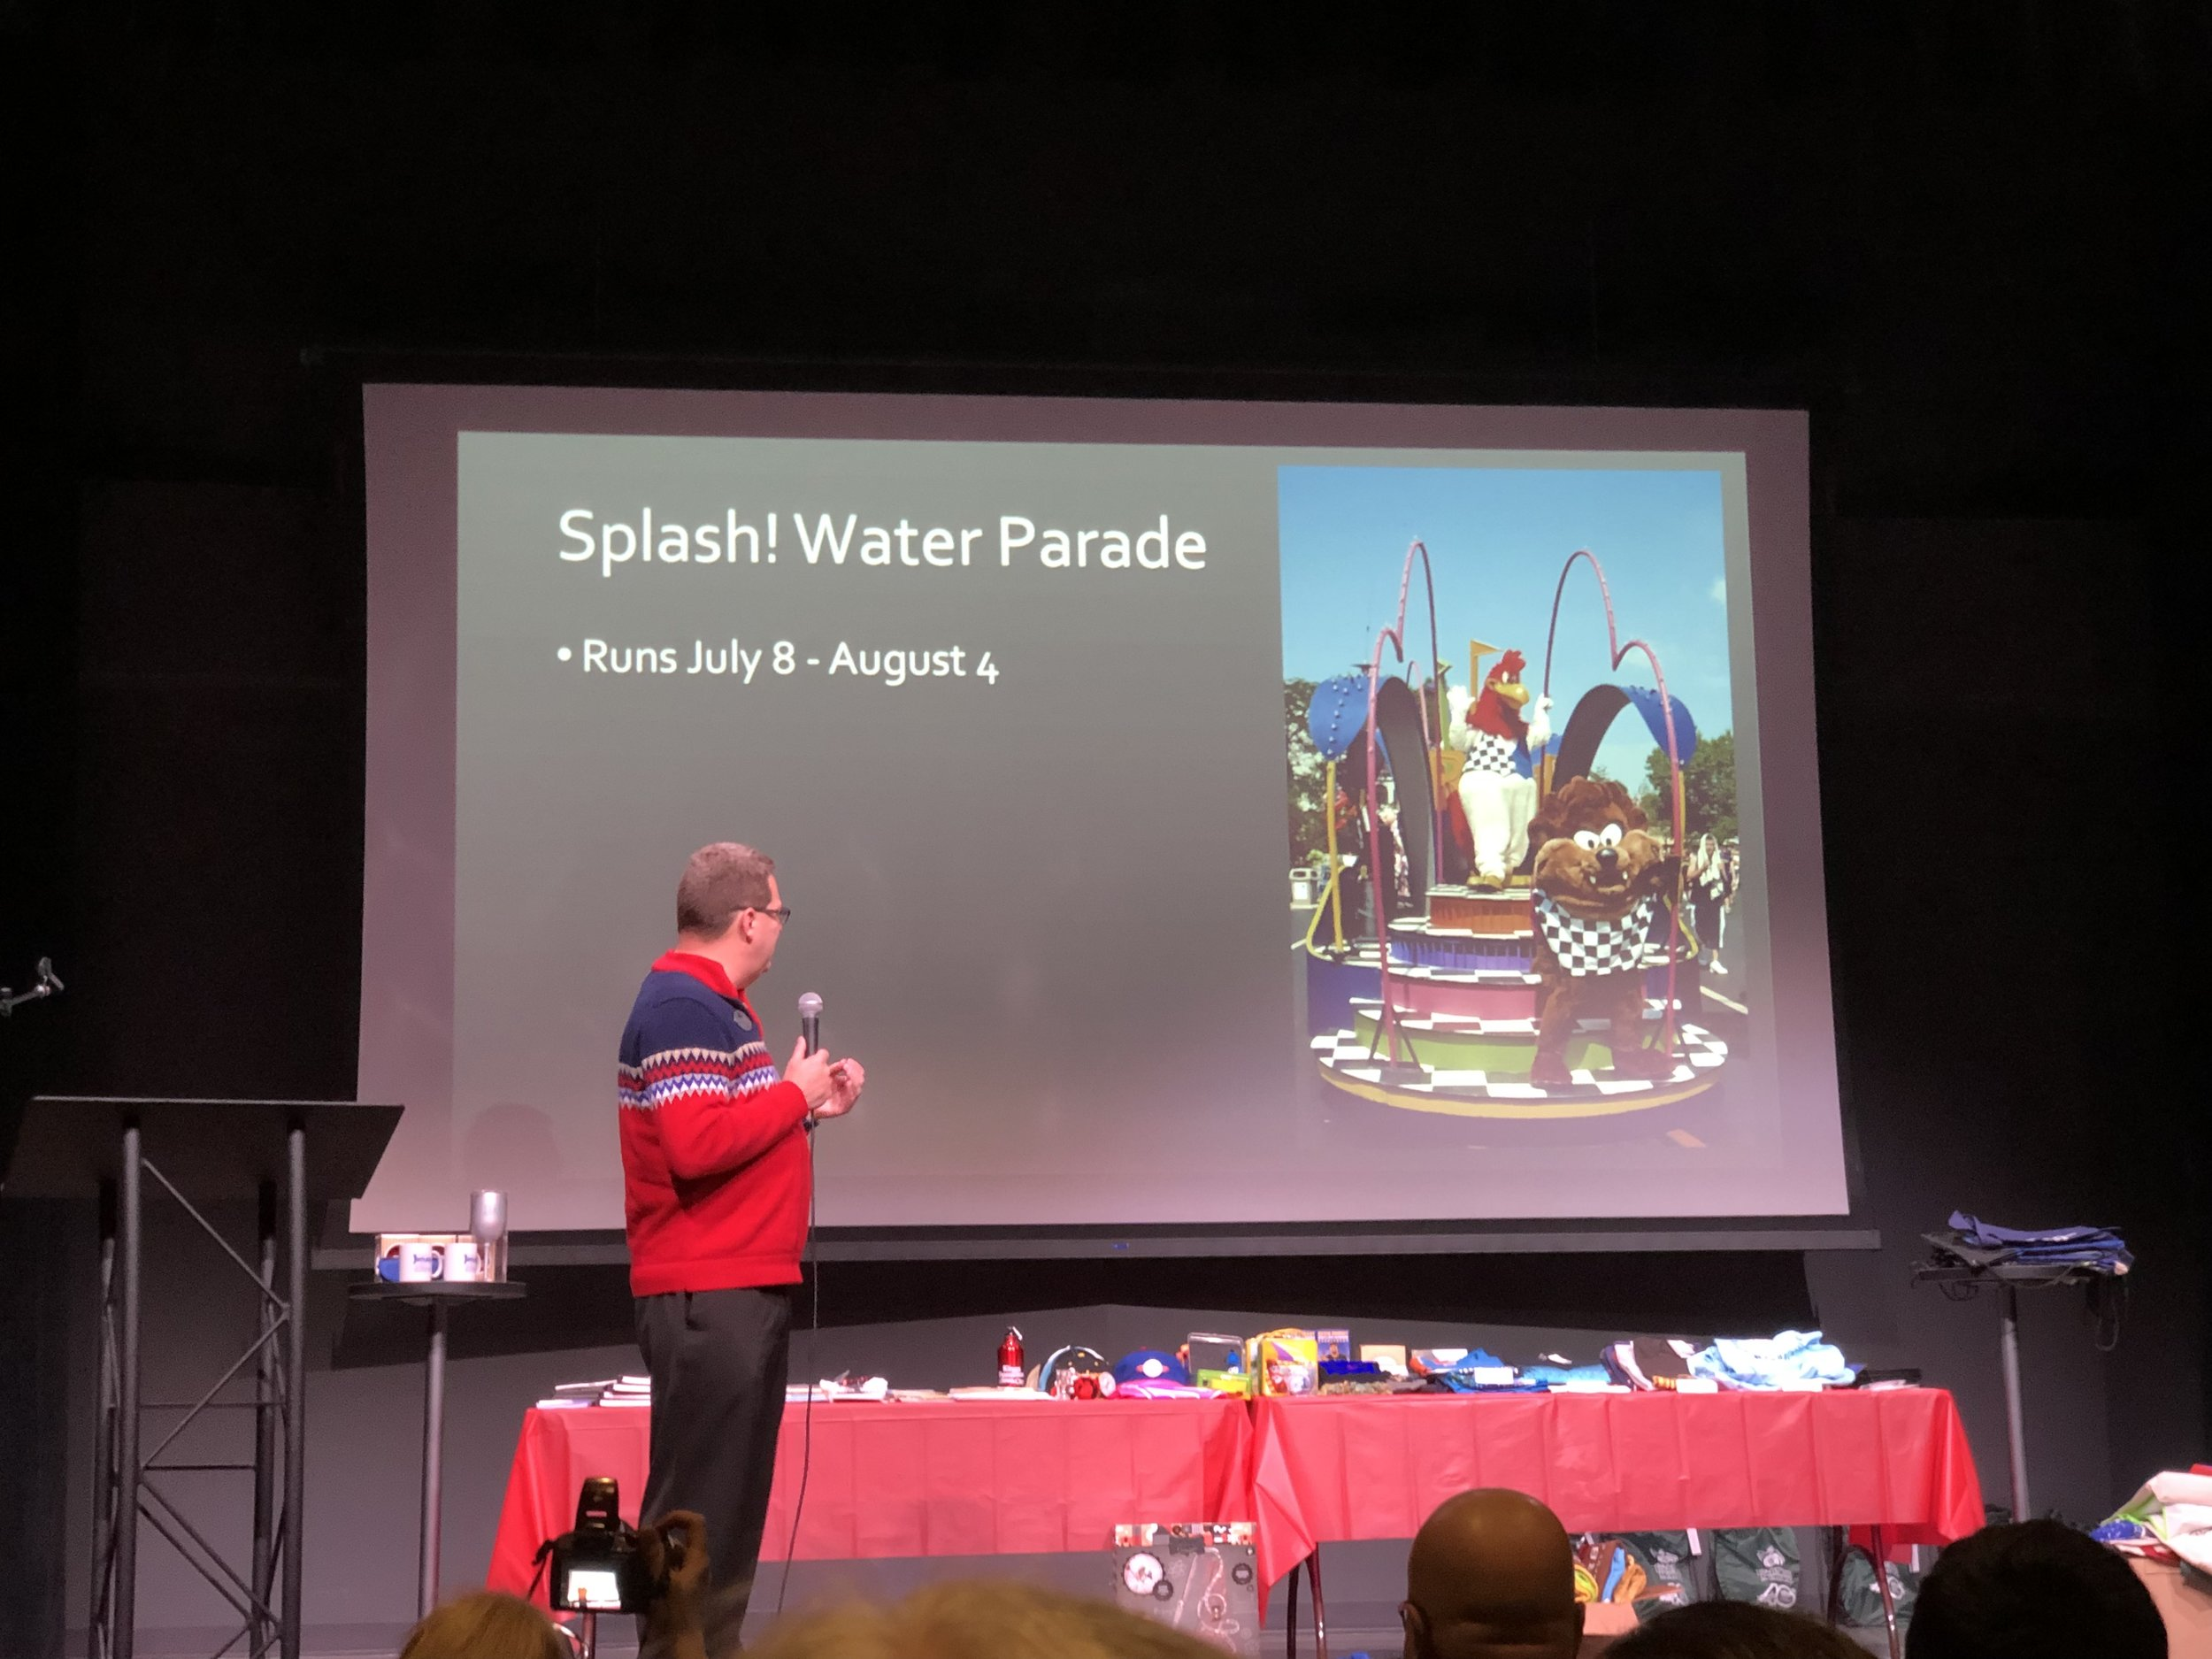 The park discussing their new Splash! Water Parade concept coming this summer.